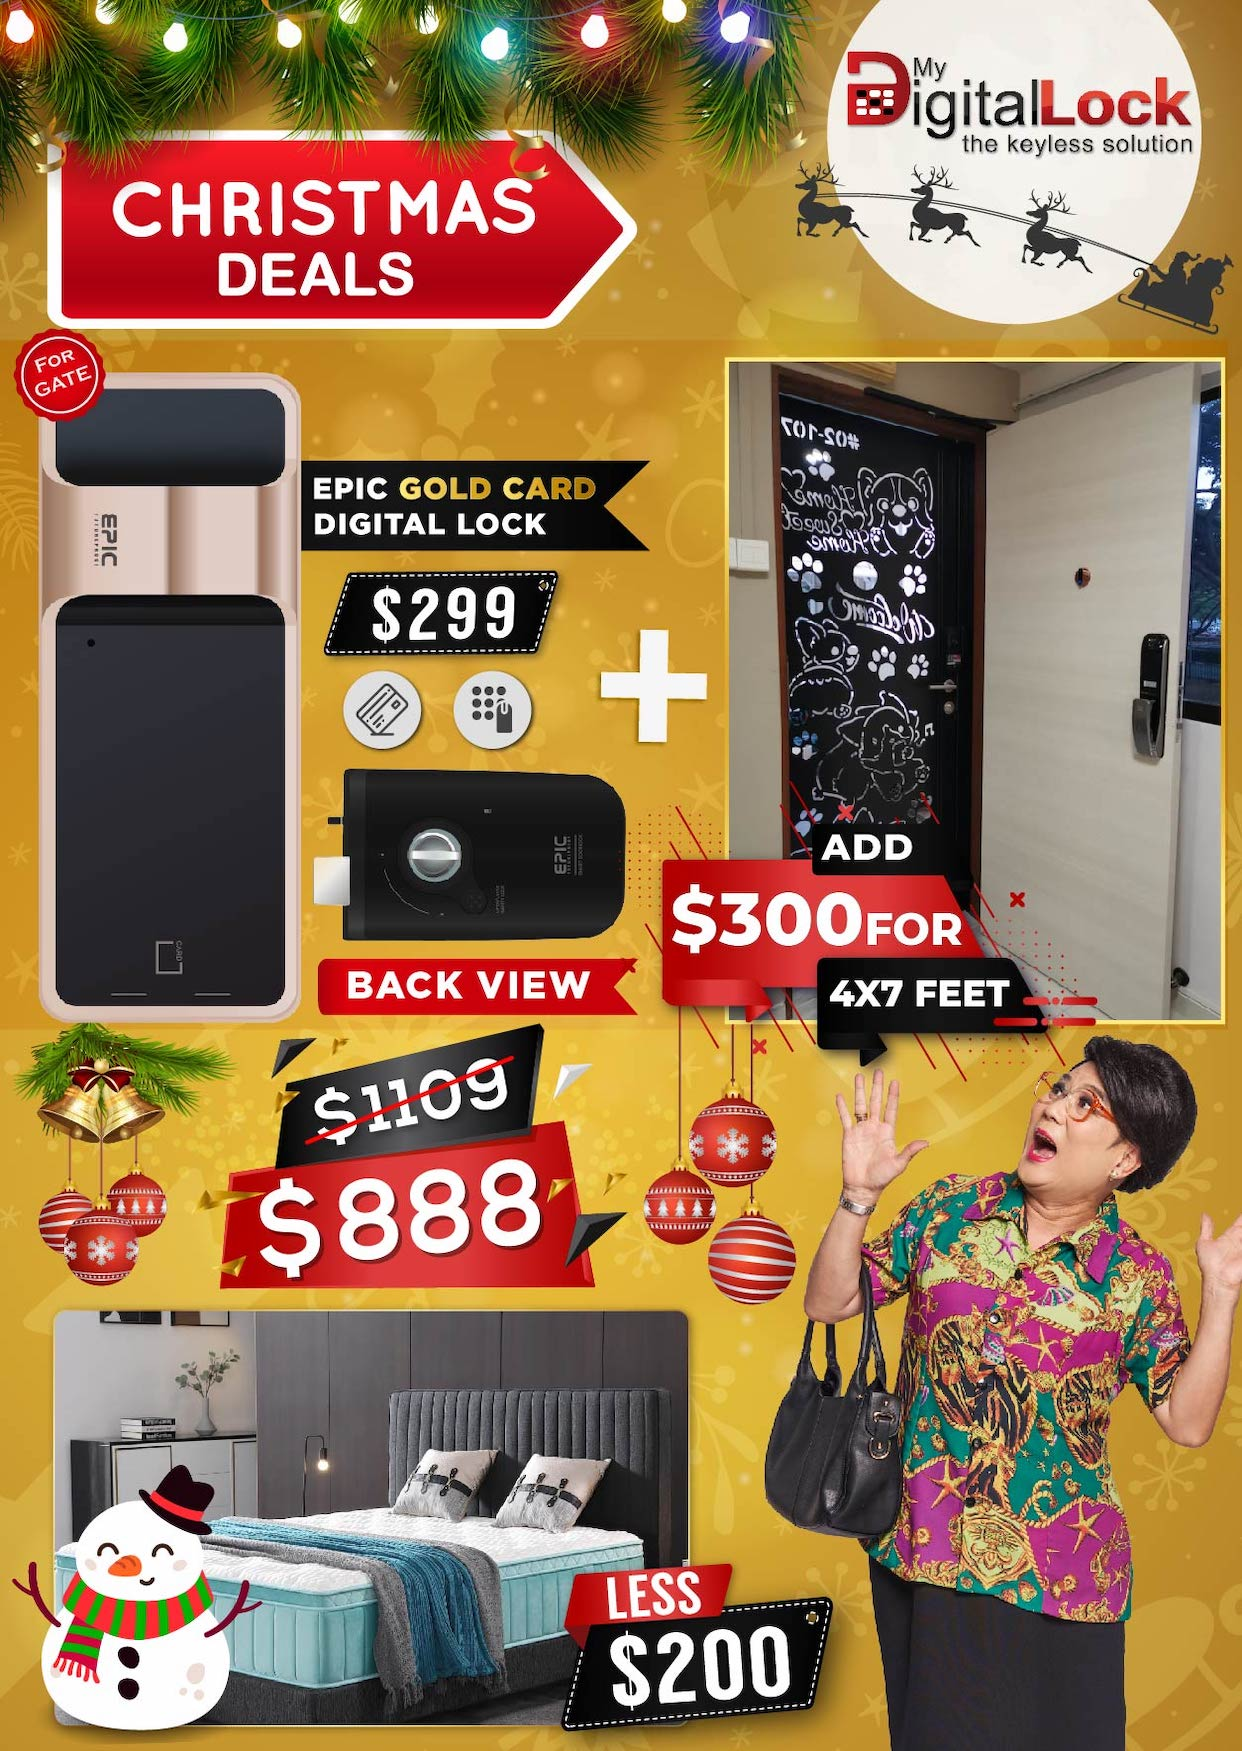 My-Digital-Lock-Door-Gate-Digital-Lock-Christmas-Promotions-2019